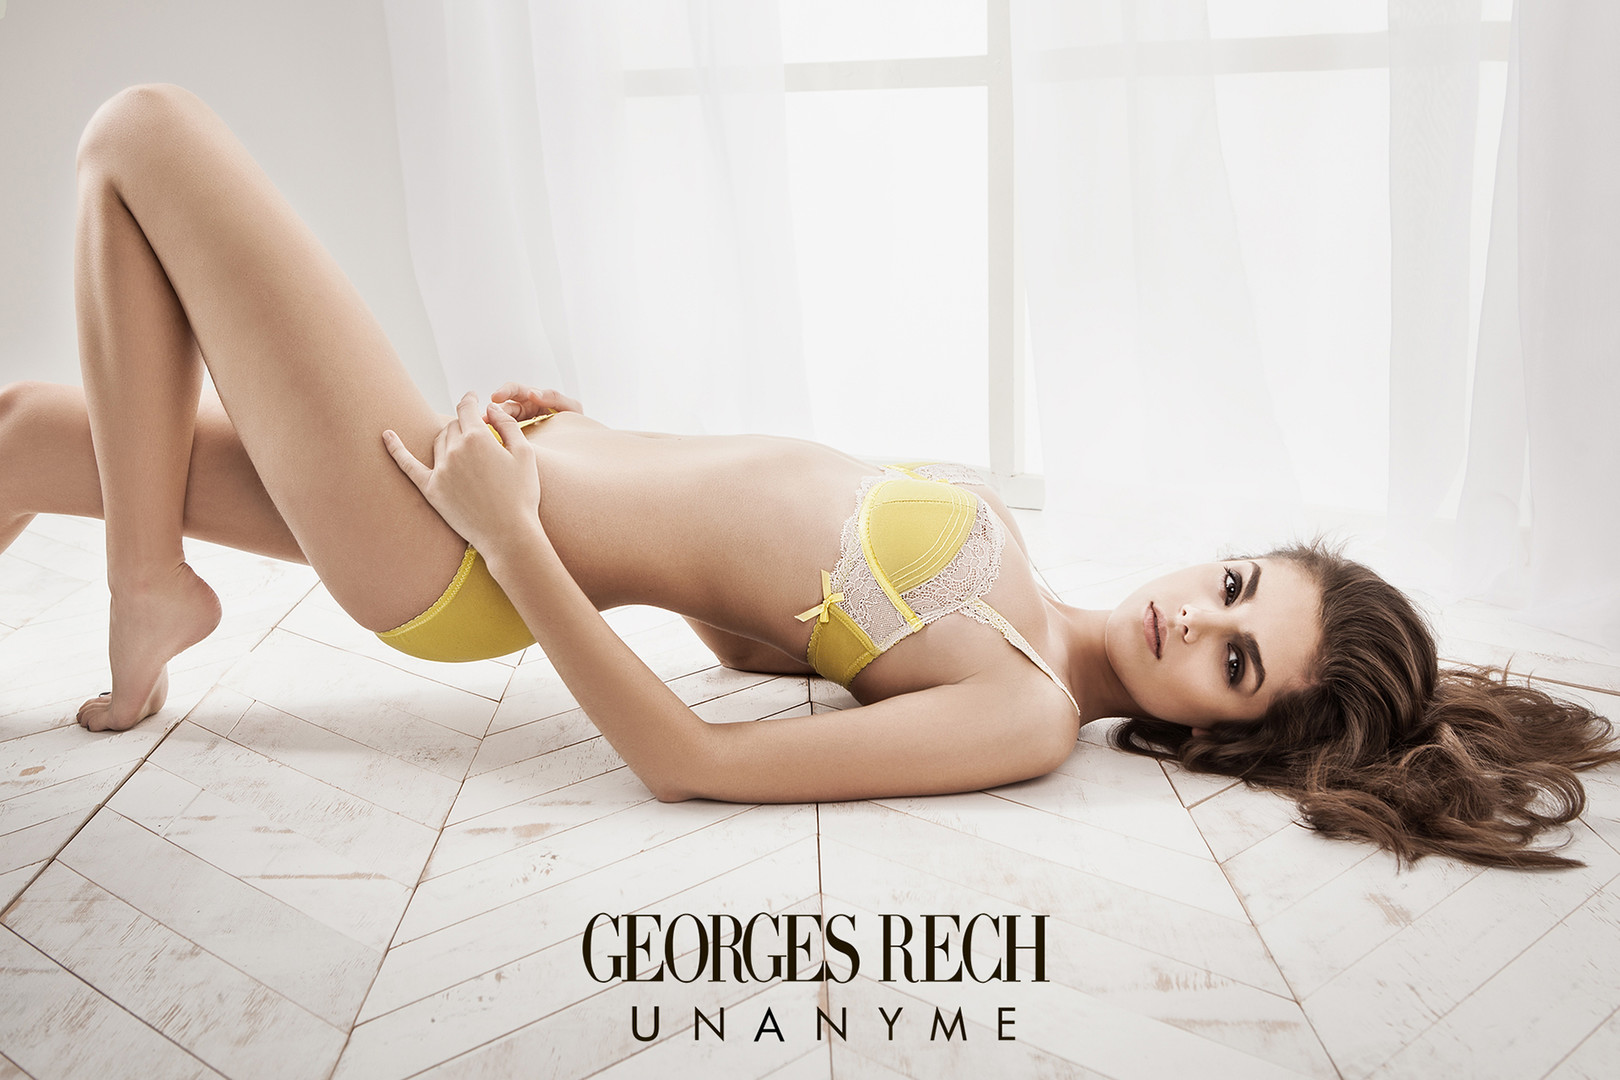 Unanyme Georges Rech Lingerie | fall/winter 2016/2017